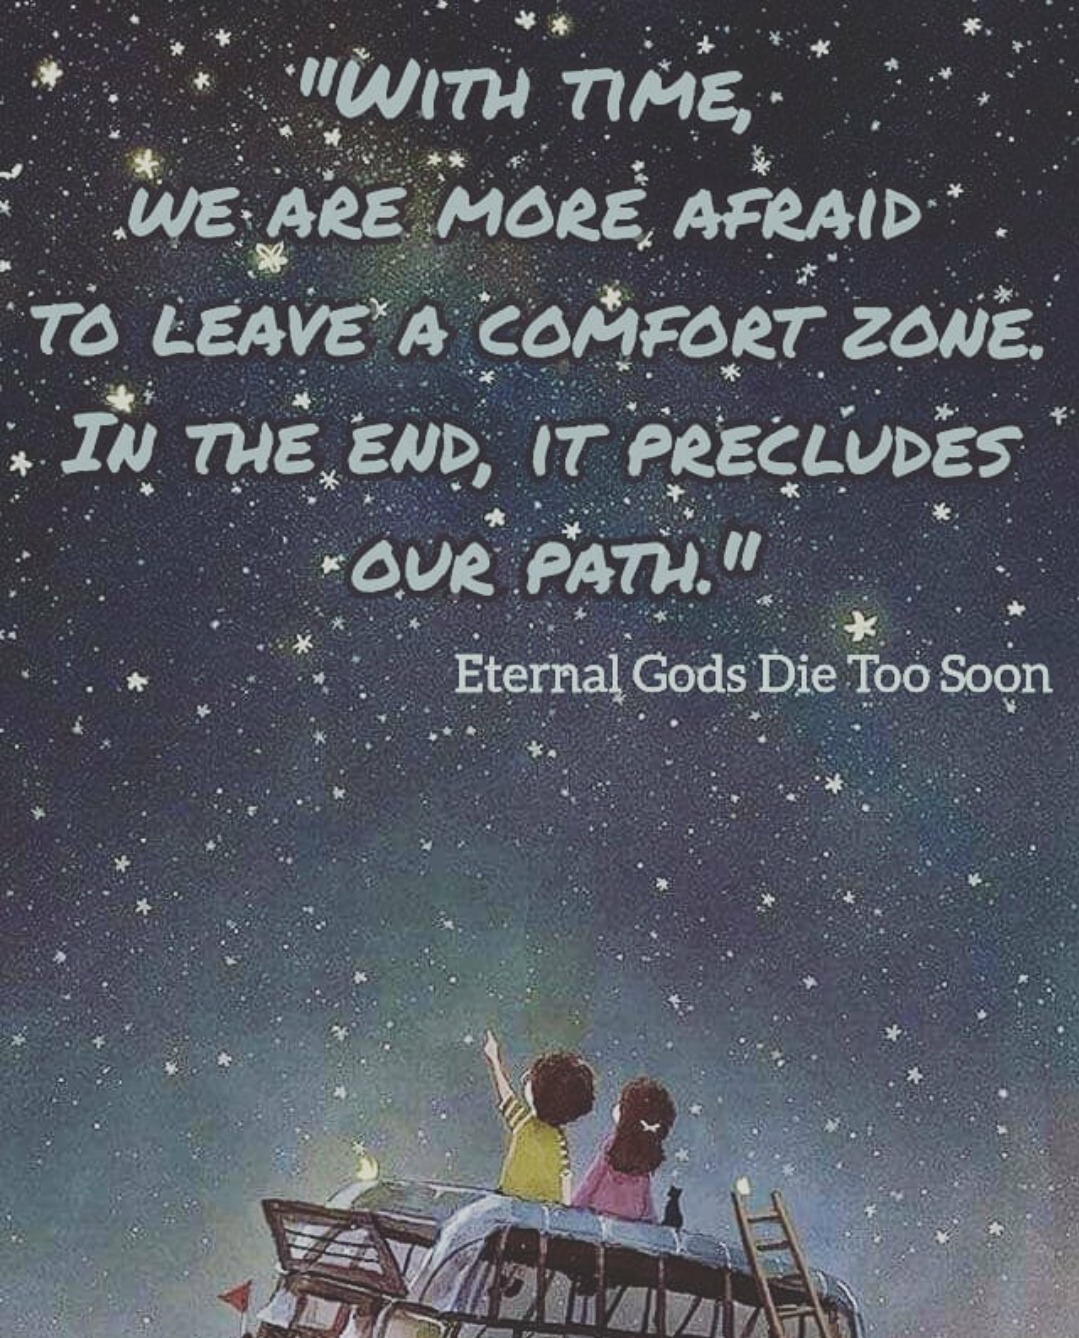 "'With time, we are more after to leave a comfort zone. In the end, it precludes our path."" Eternal Gods Die Too Soon by Beka Modrekiladze [1079×1338]"